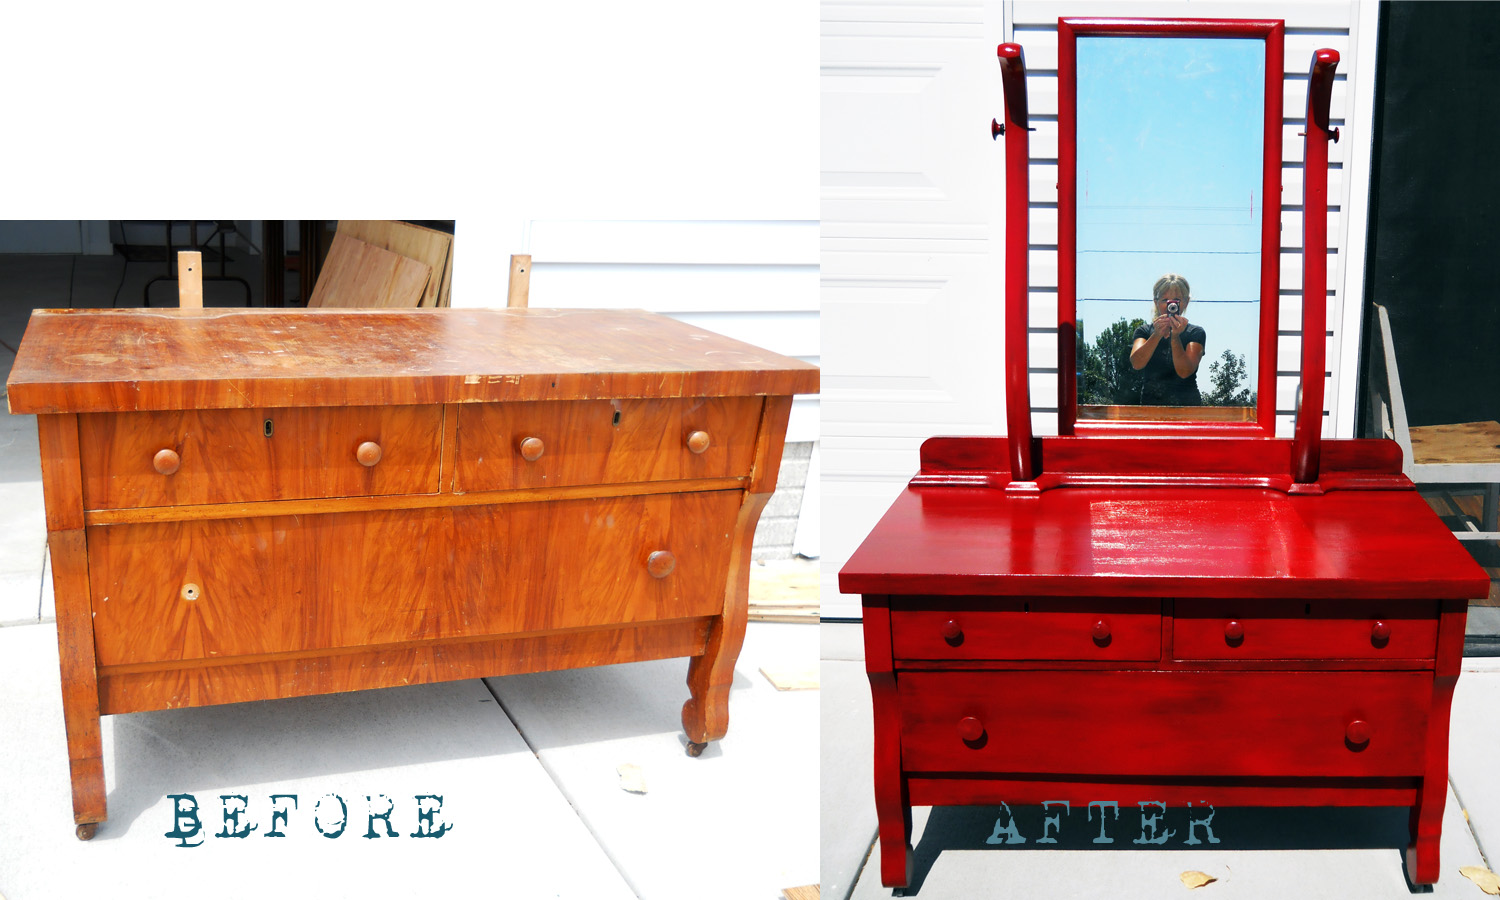 Lake girl paints furniture redo in red for Redo furniture